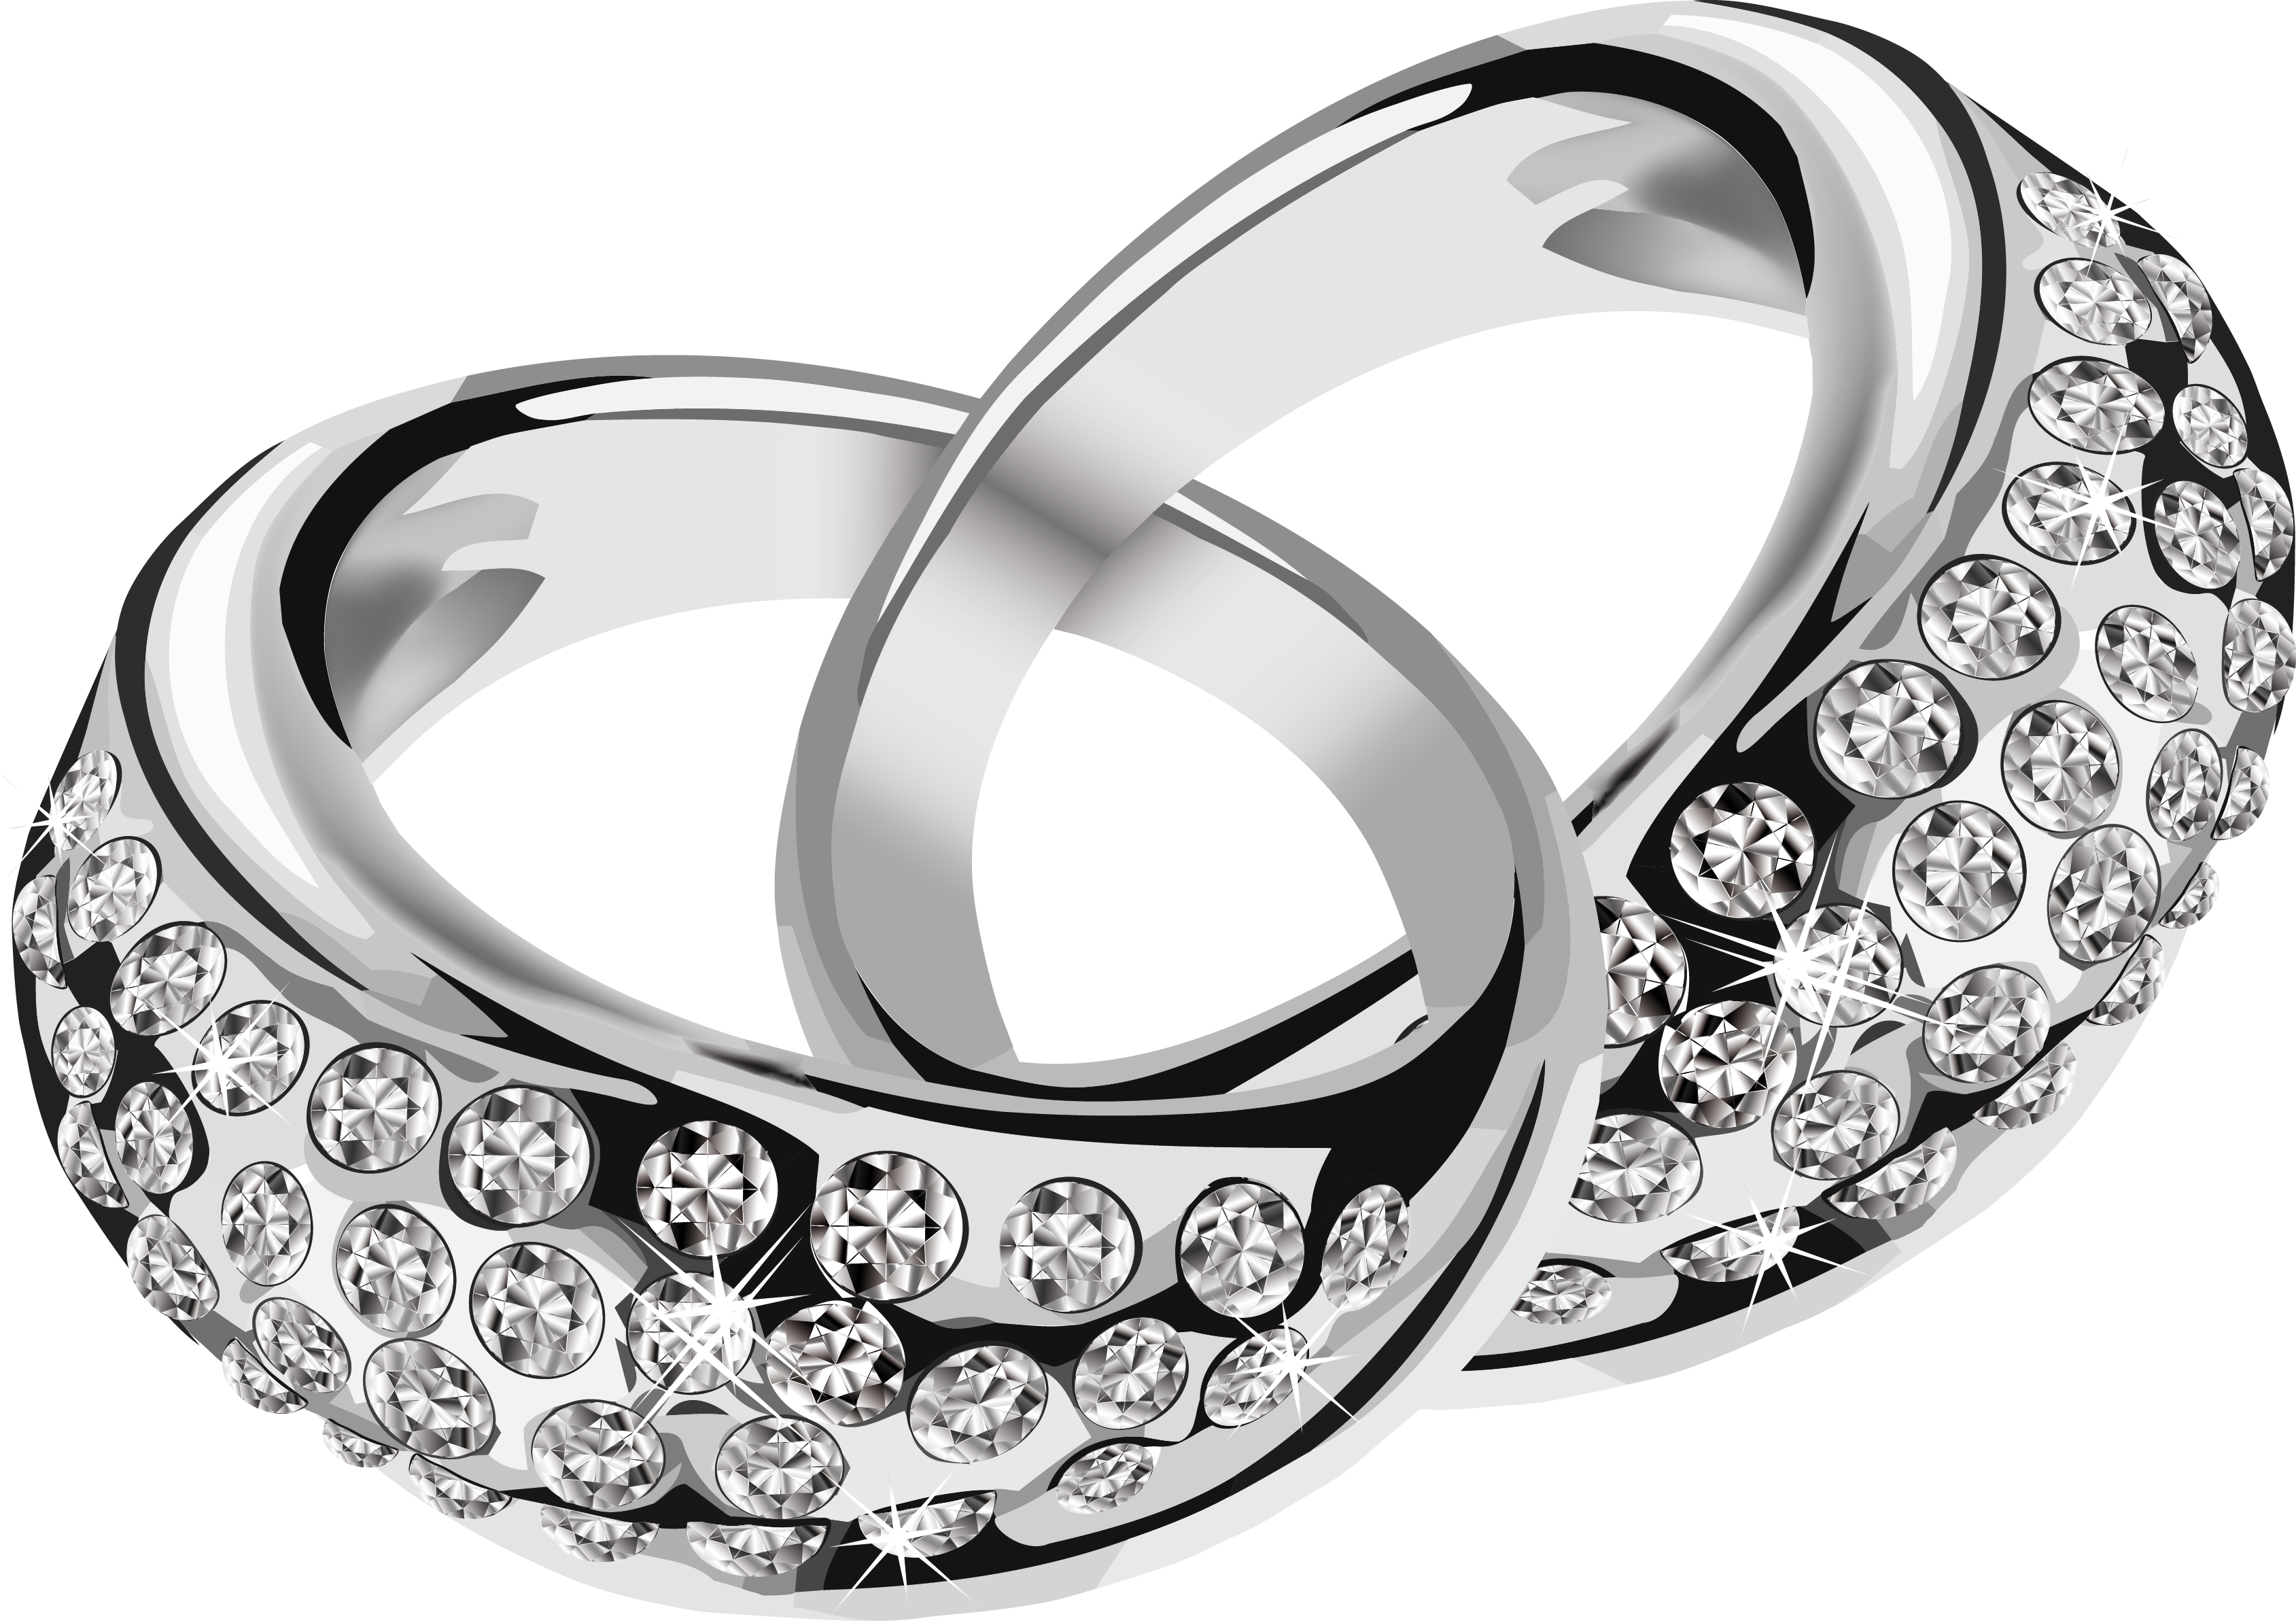 Jewelry png images free. Diamond ring .png svg royalty free